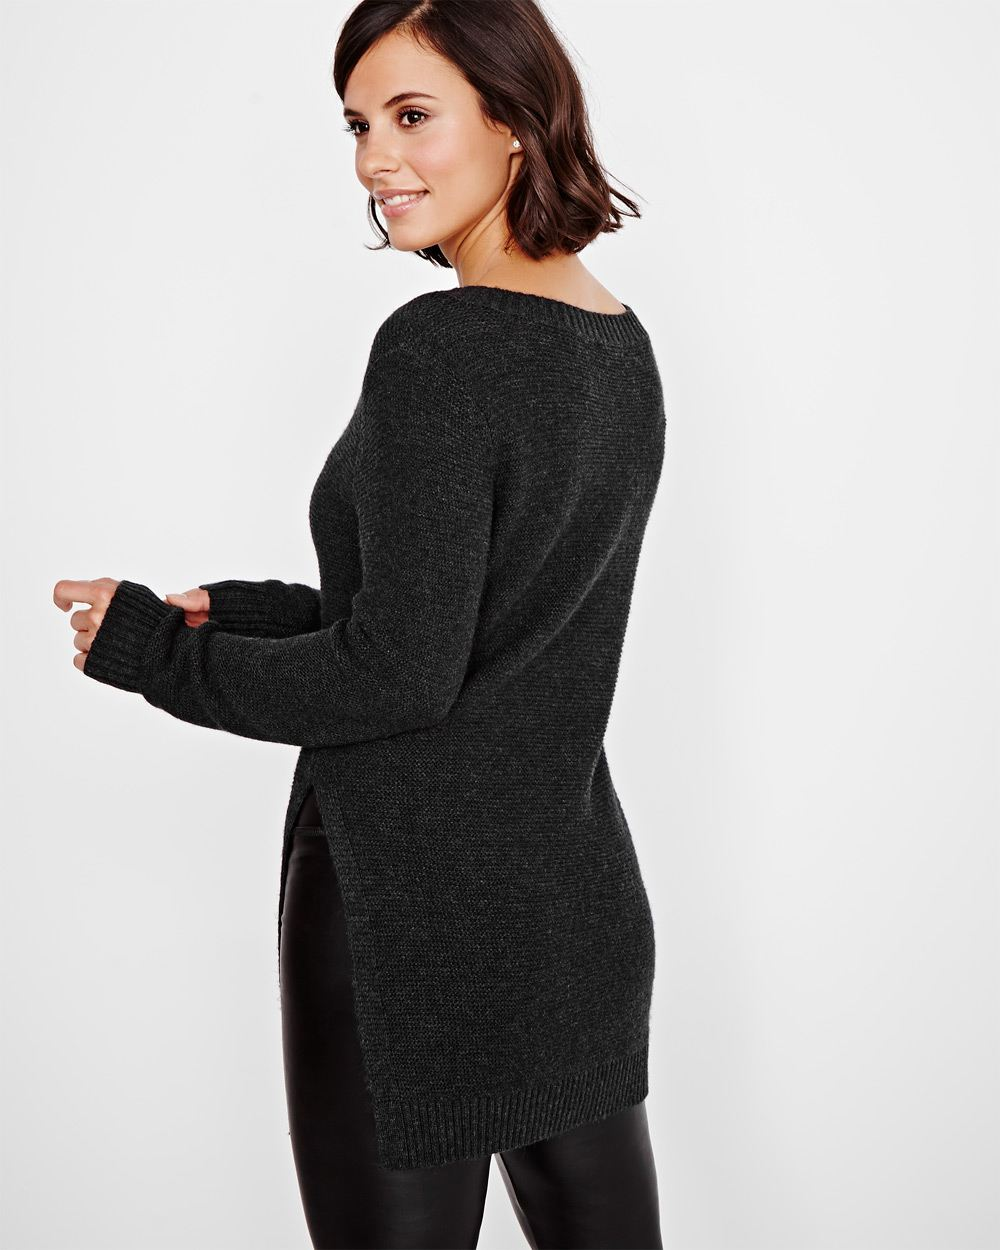 tunic sweaters - up to 70% off. Well, darn. This item just sold out. Select notify me & we'll tell you when it's back in stock.